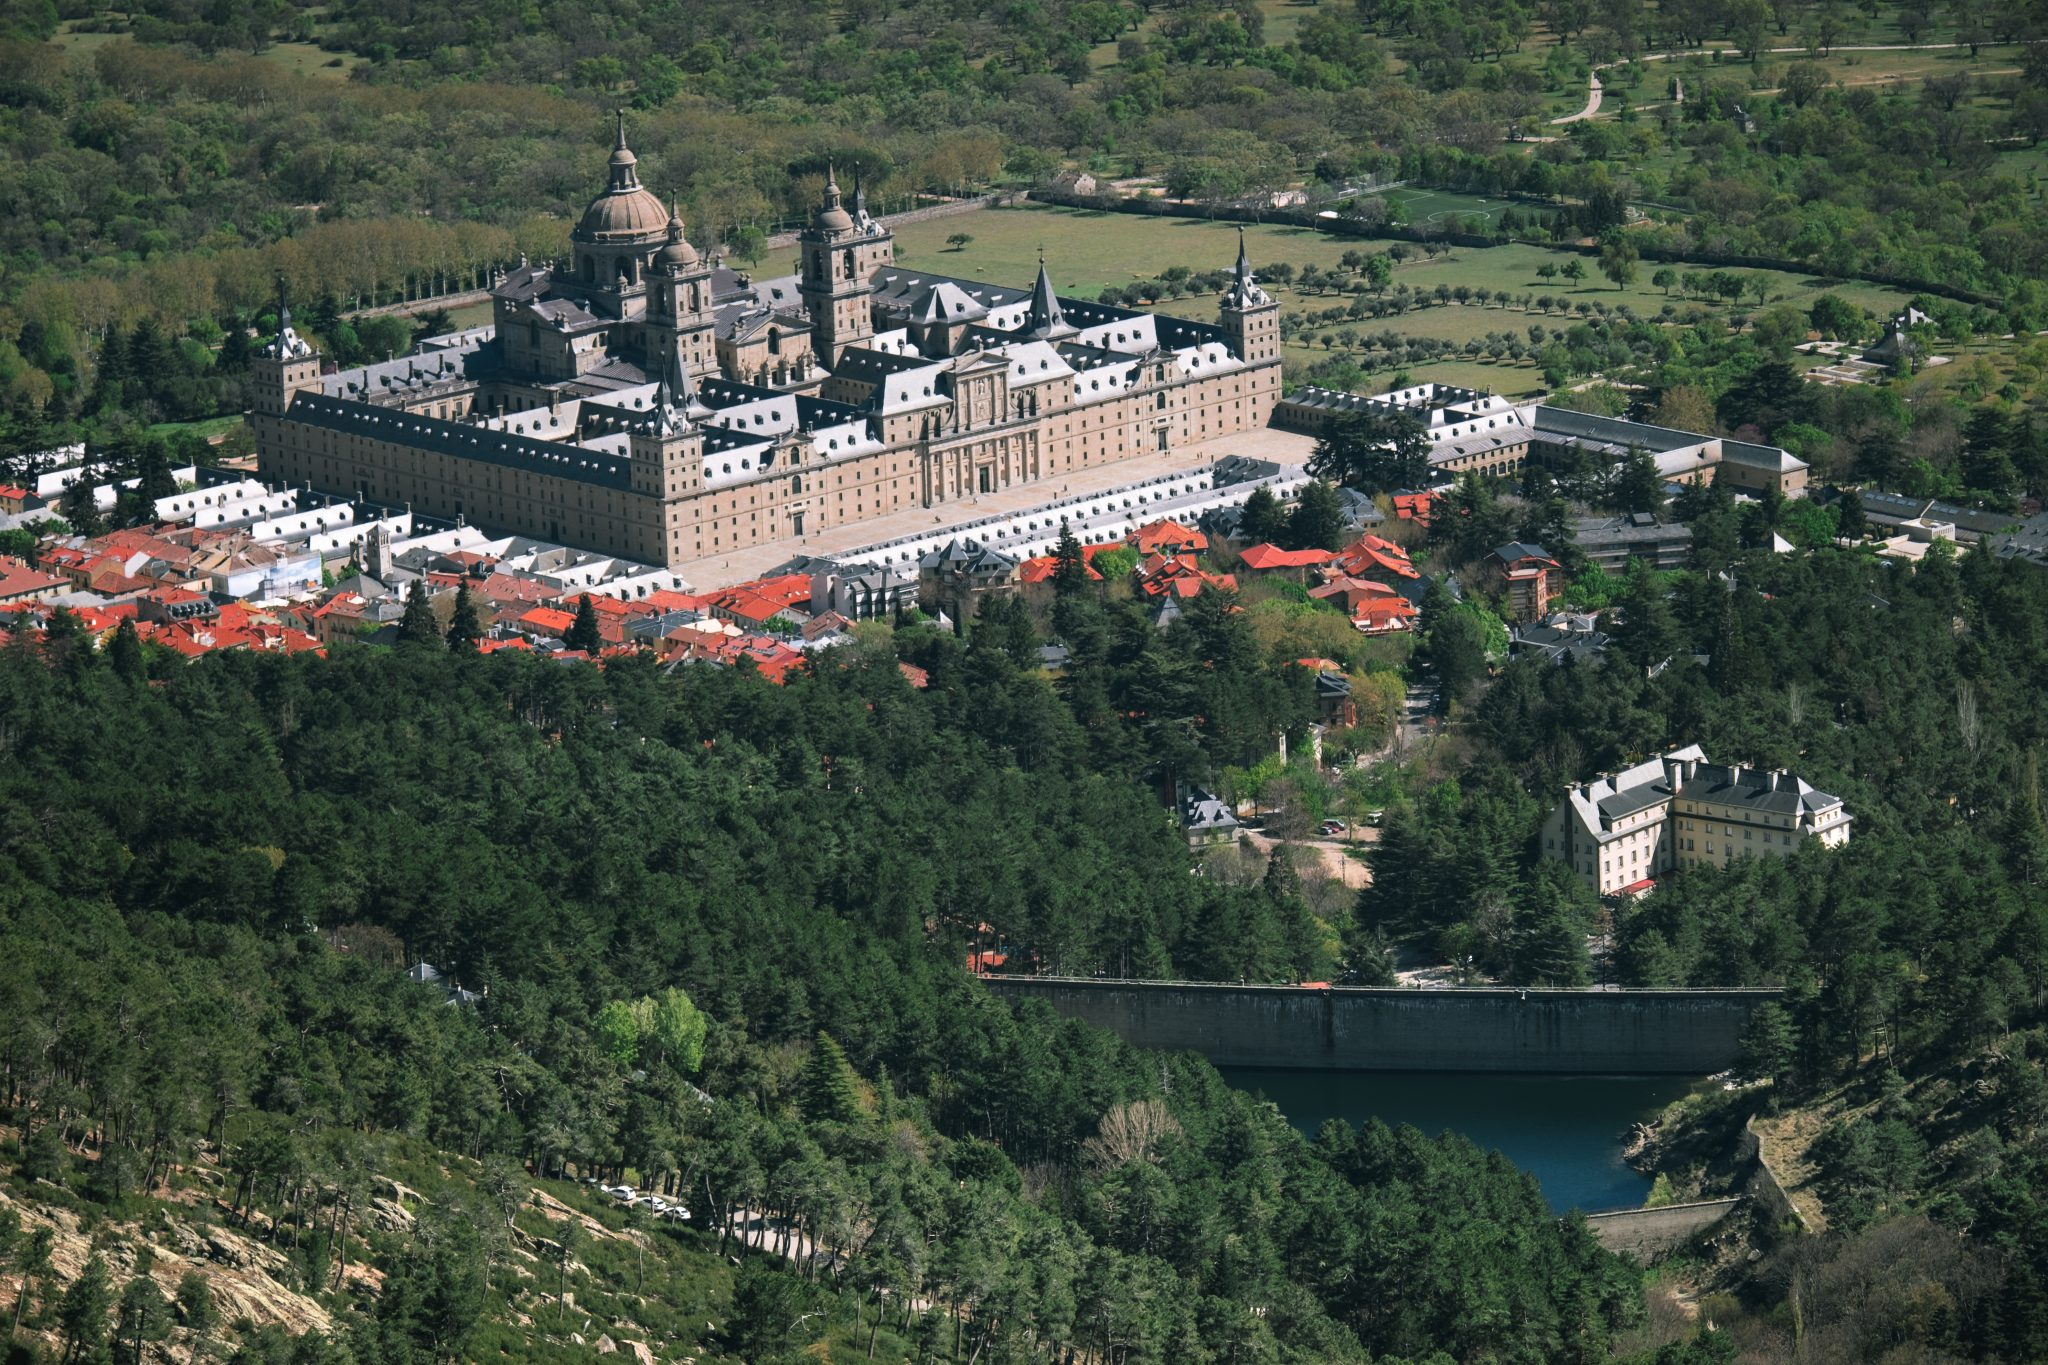 Panoramic view of the escorial by Jo Kassis